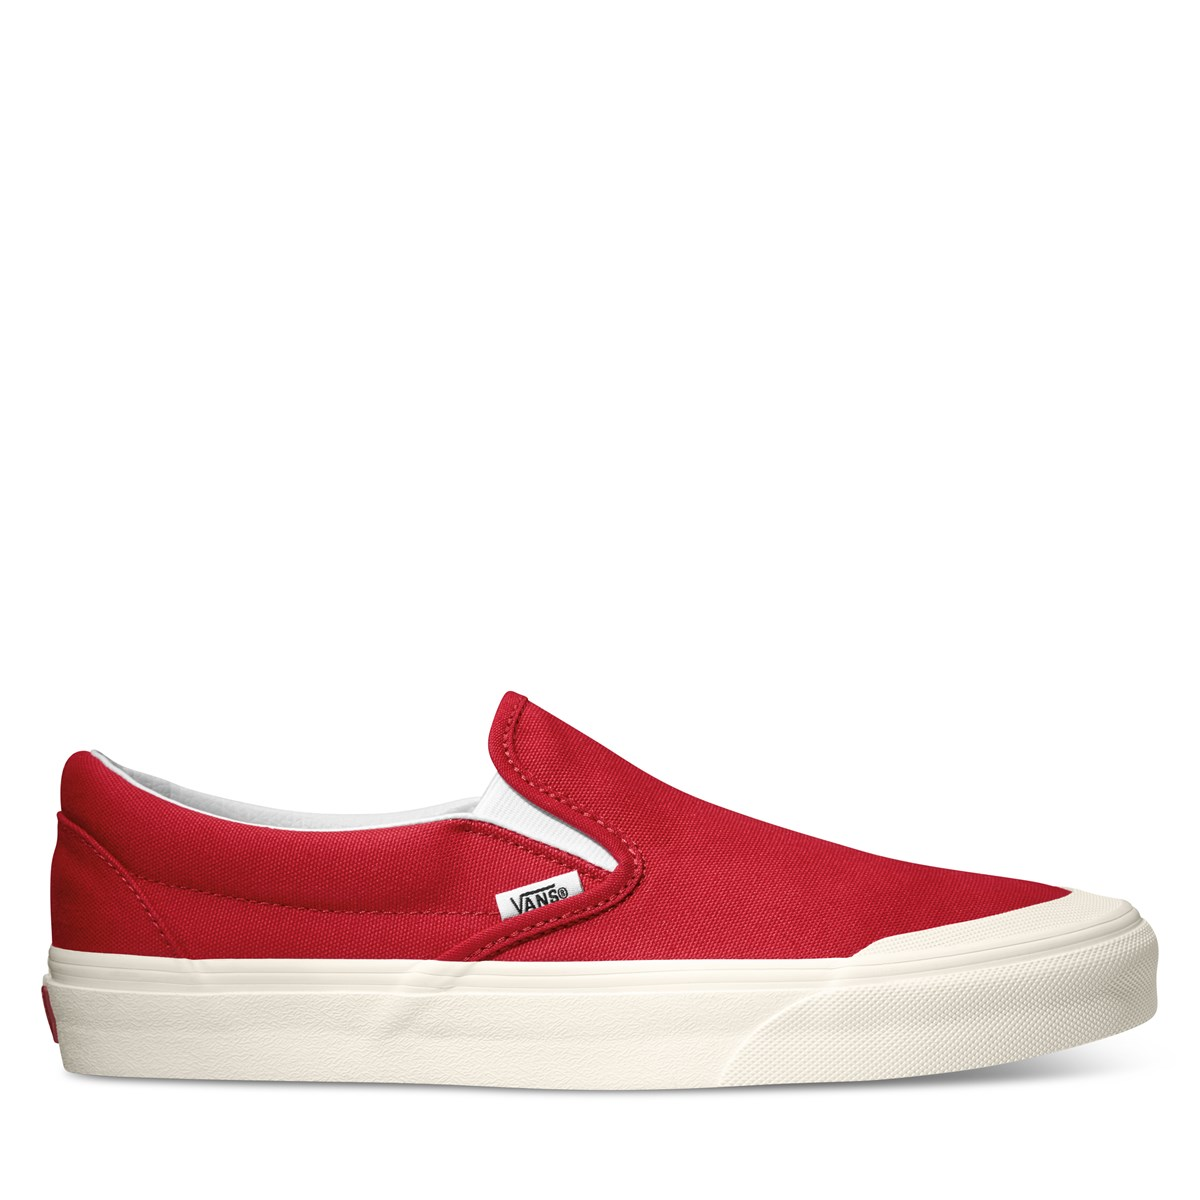 Men's Classic 138 Slip-On Sneakers in  Red